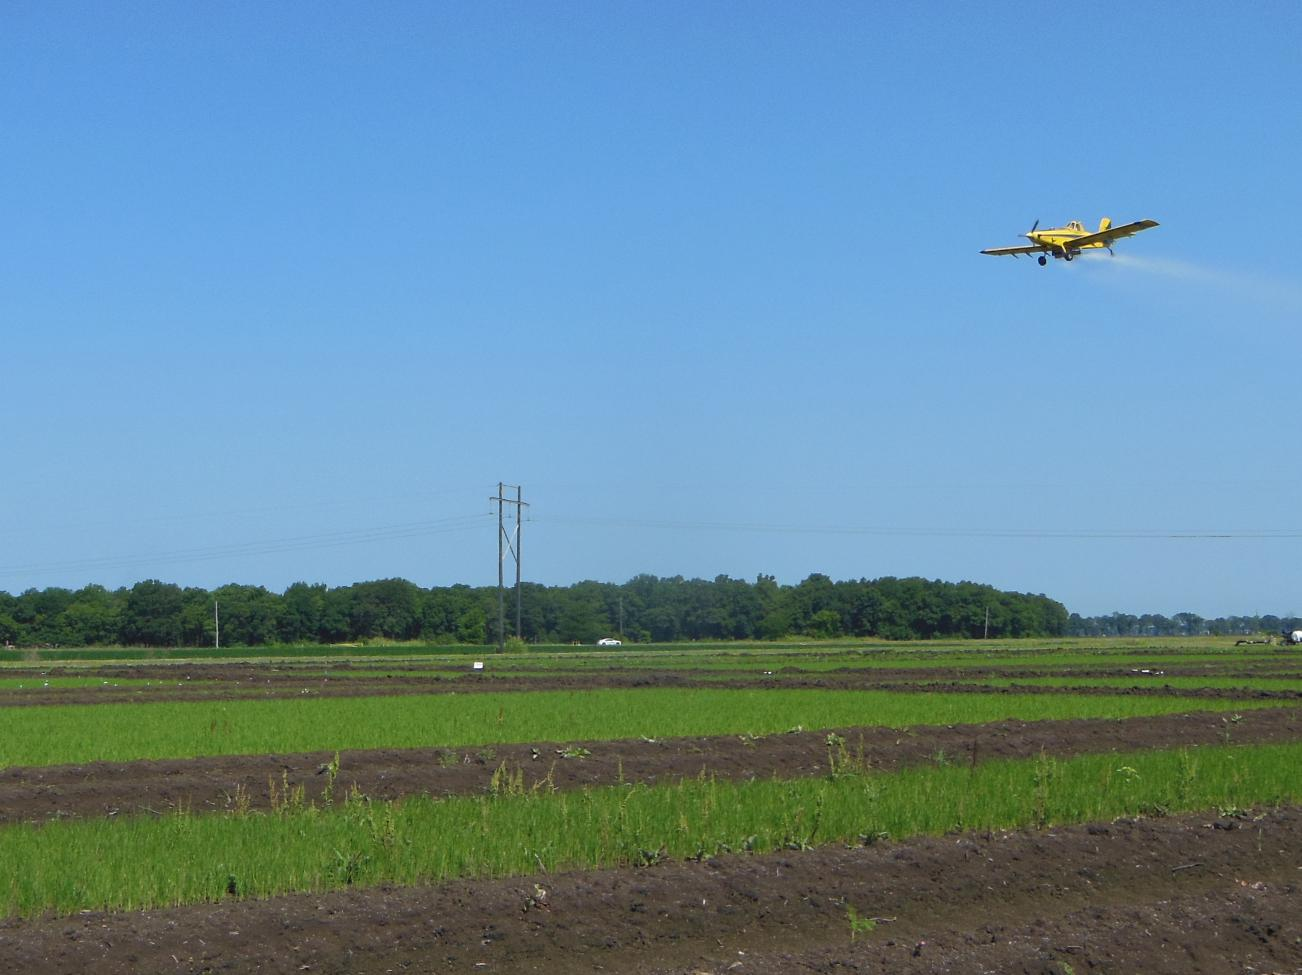 Nitrogen is applied to rice fields as urea, which is being sprayed by aerial application on this preflood field in Washington County, Mississippi, in June 2015. (Photo by MSU Extension Service/Lee Atwill)